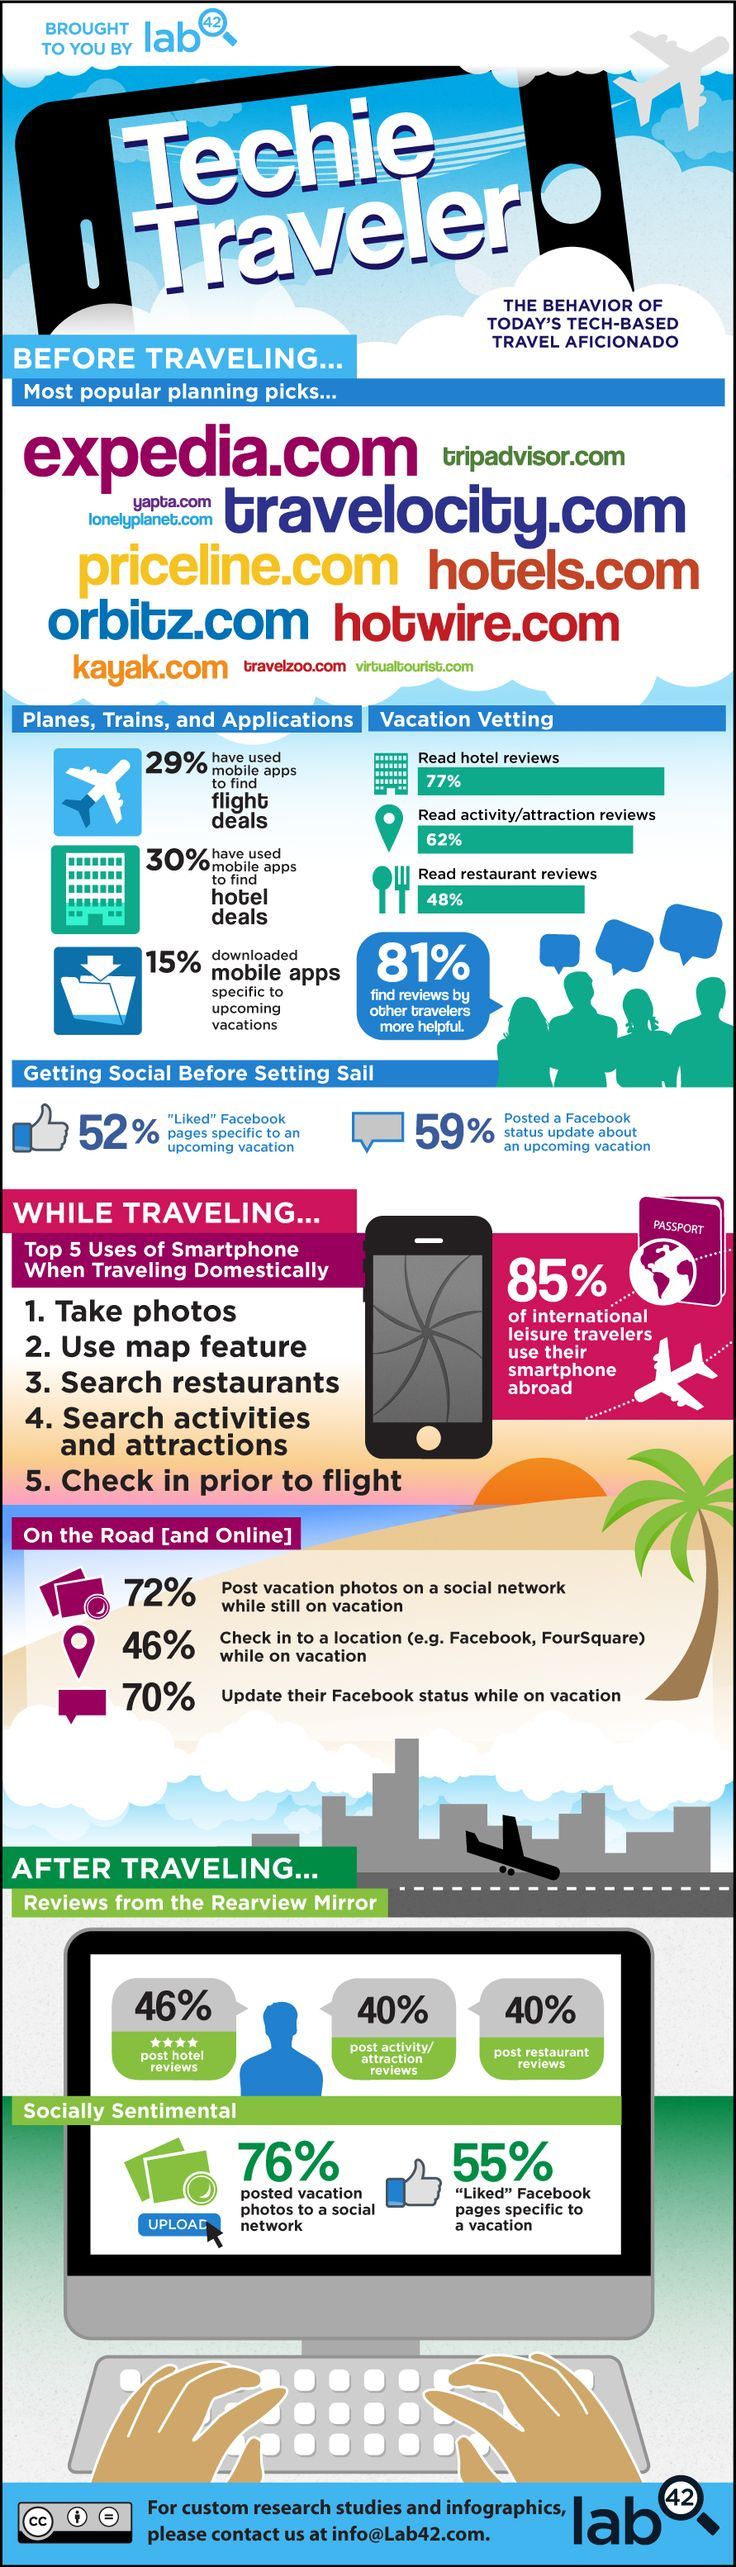 How technology changed travel [infographic]